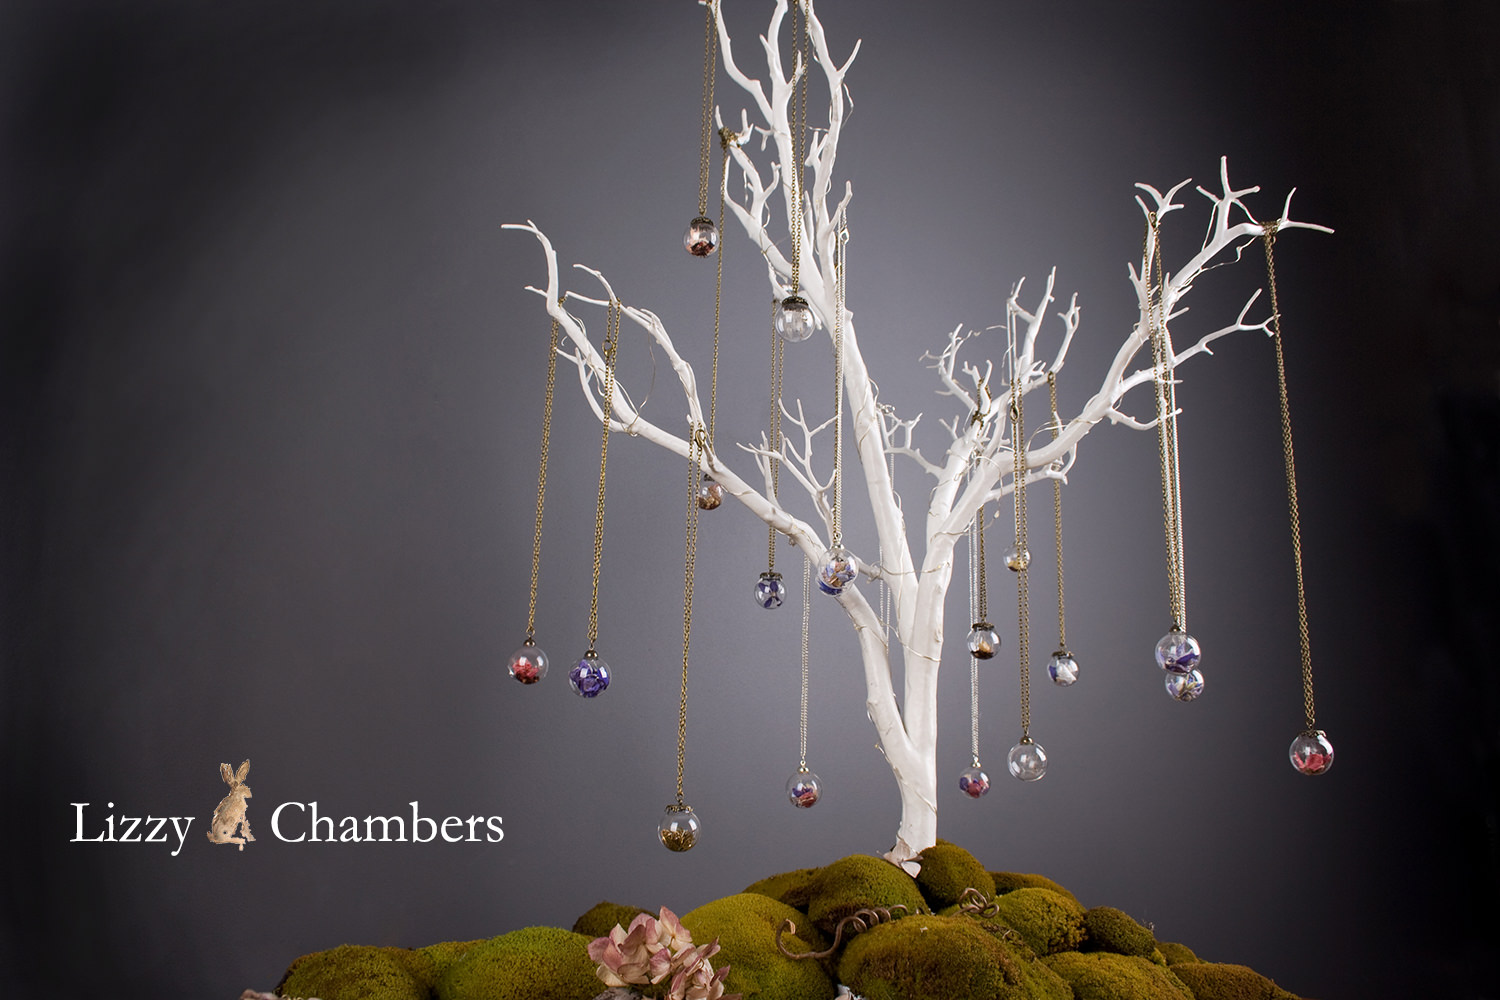 Enchanted-tree-with-Lizzy-Chambers.jpg